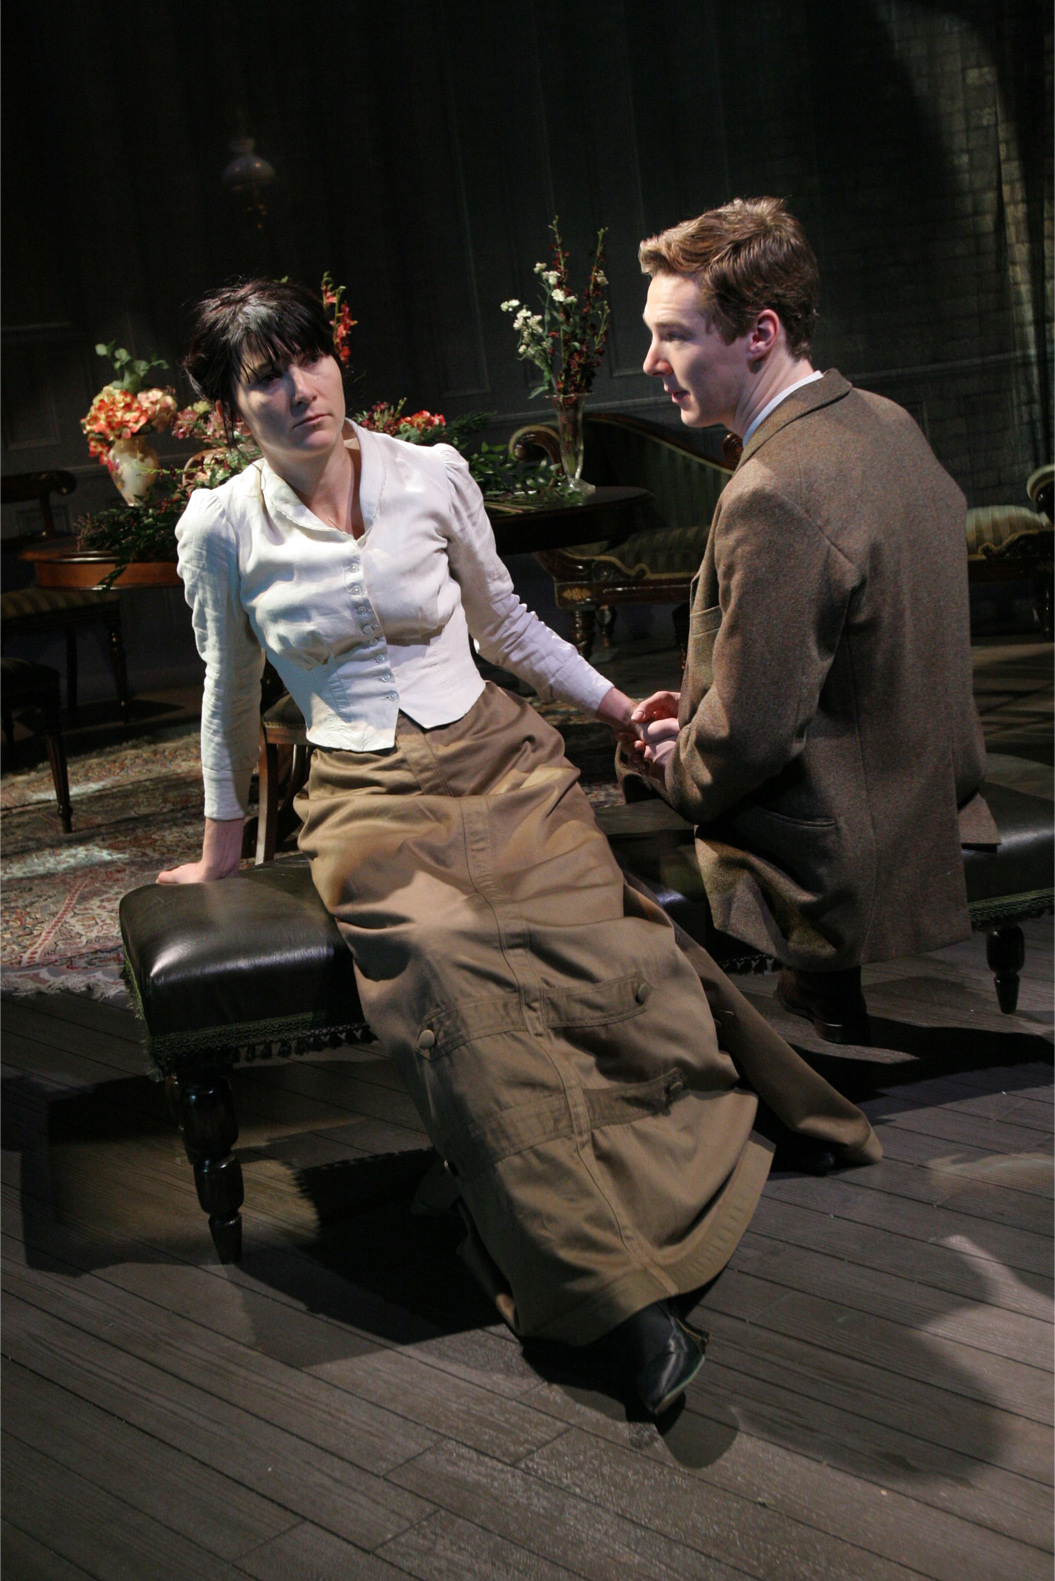 A comparison of ibsens characters hedda gabler and ghosts